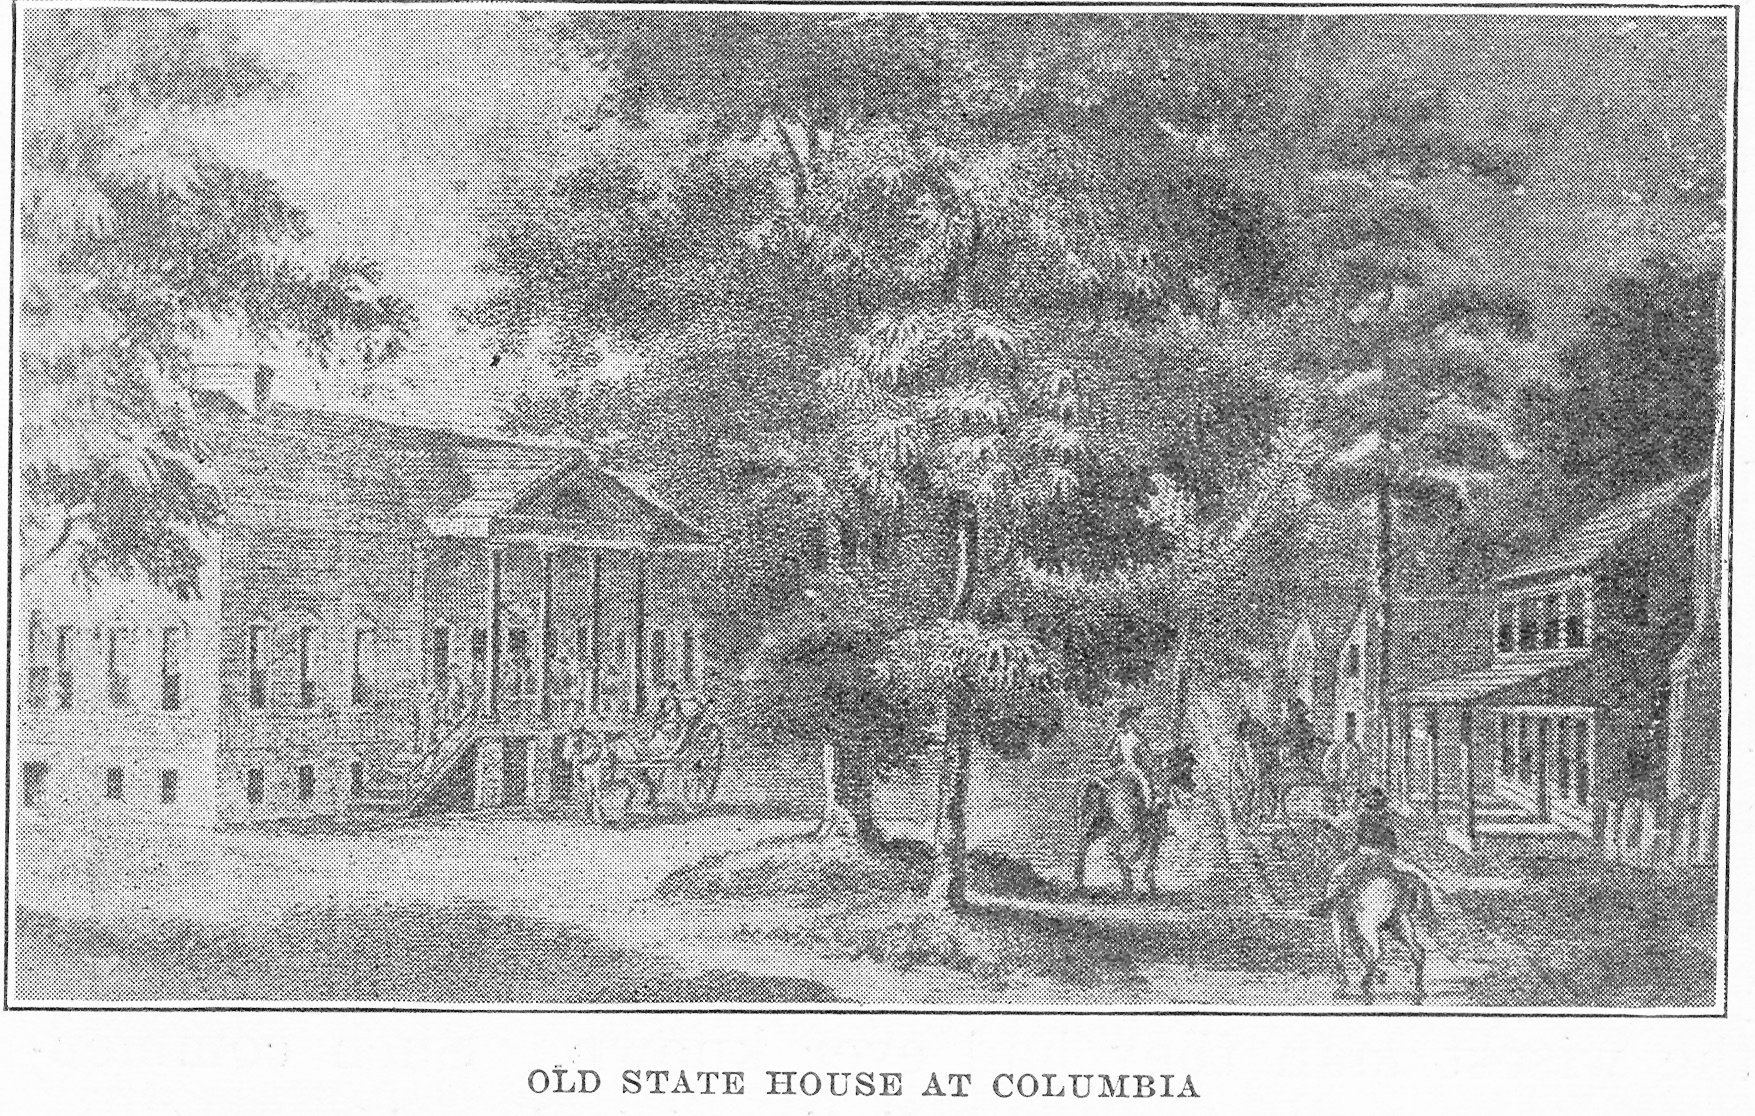 4, 1790 - Legislature meets in Columbia for 1st time | The Sumter Item